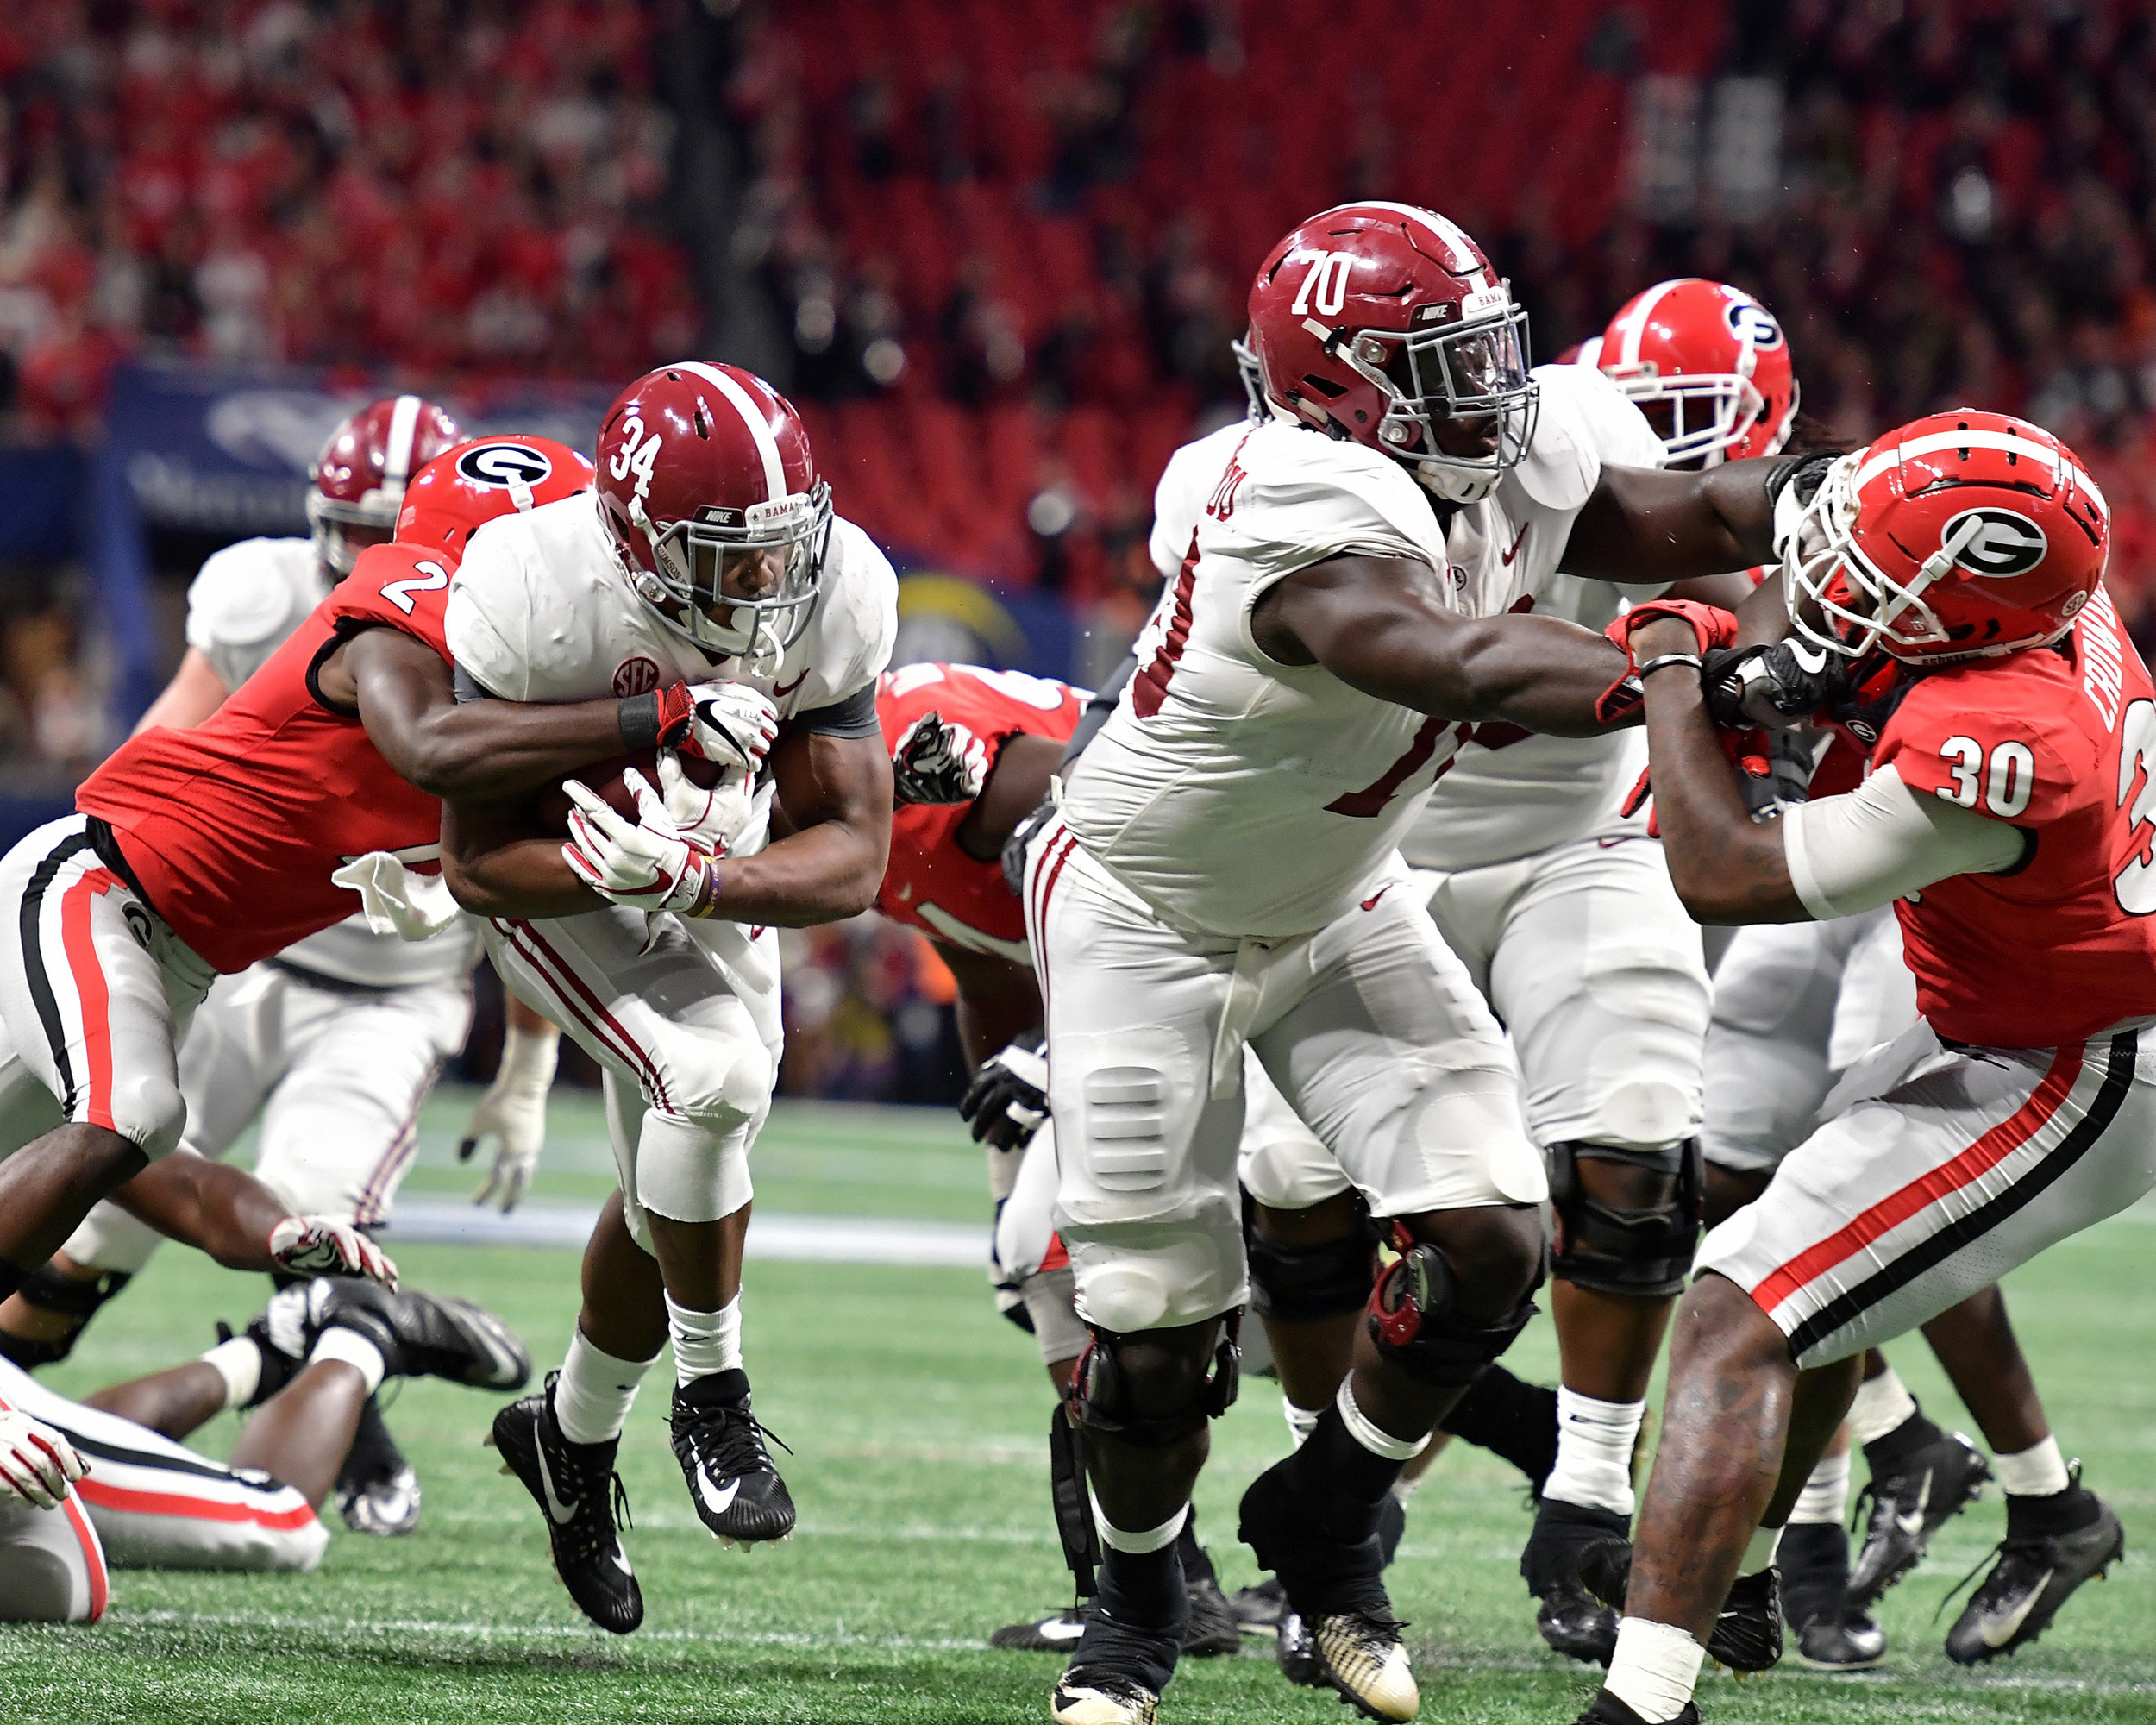 Alabama Crimson Tide running back Damien Harris (34) with a carry during the first half of the 2018 SEC Championship football game against the Georgia Bulldogs at Mercedes-Benz Stadium in Atlanta, Ga., on Dec. 1, 2018. Alabama wins 35-28. (Photo by Lee Walls)